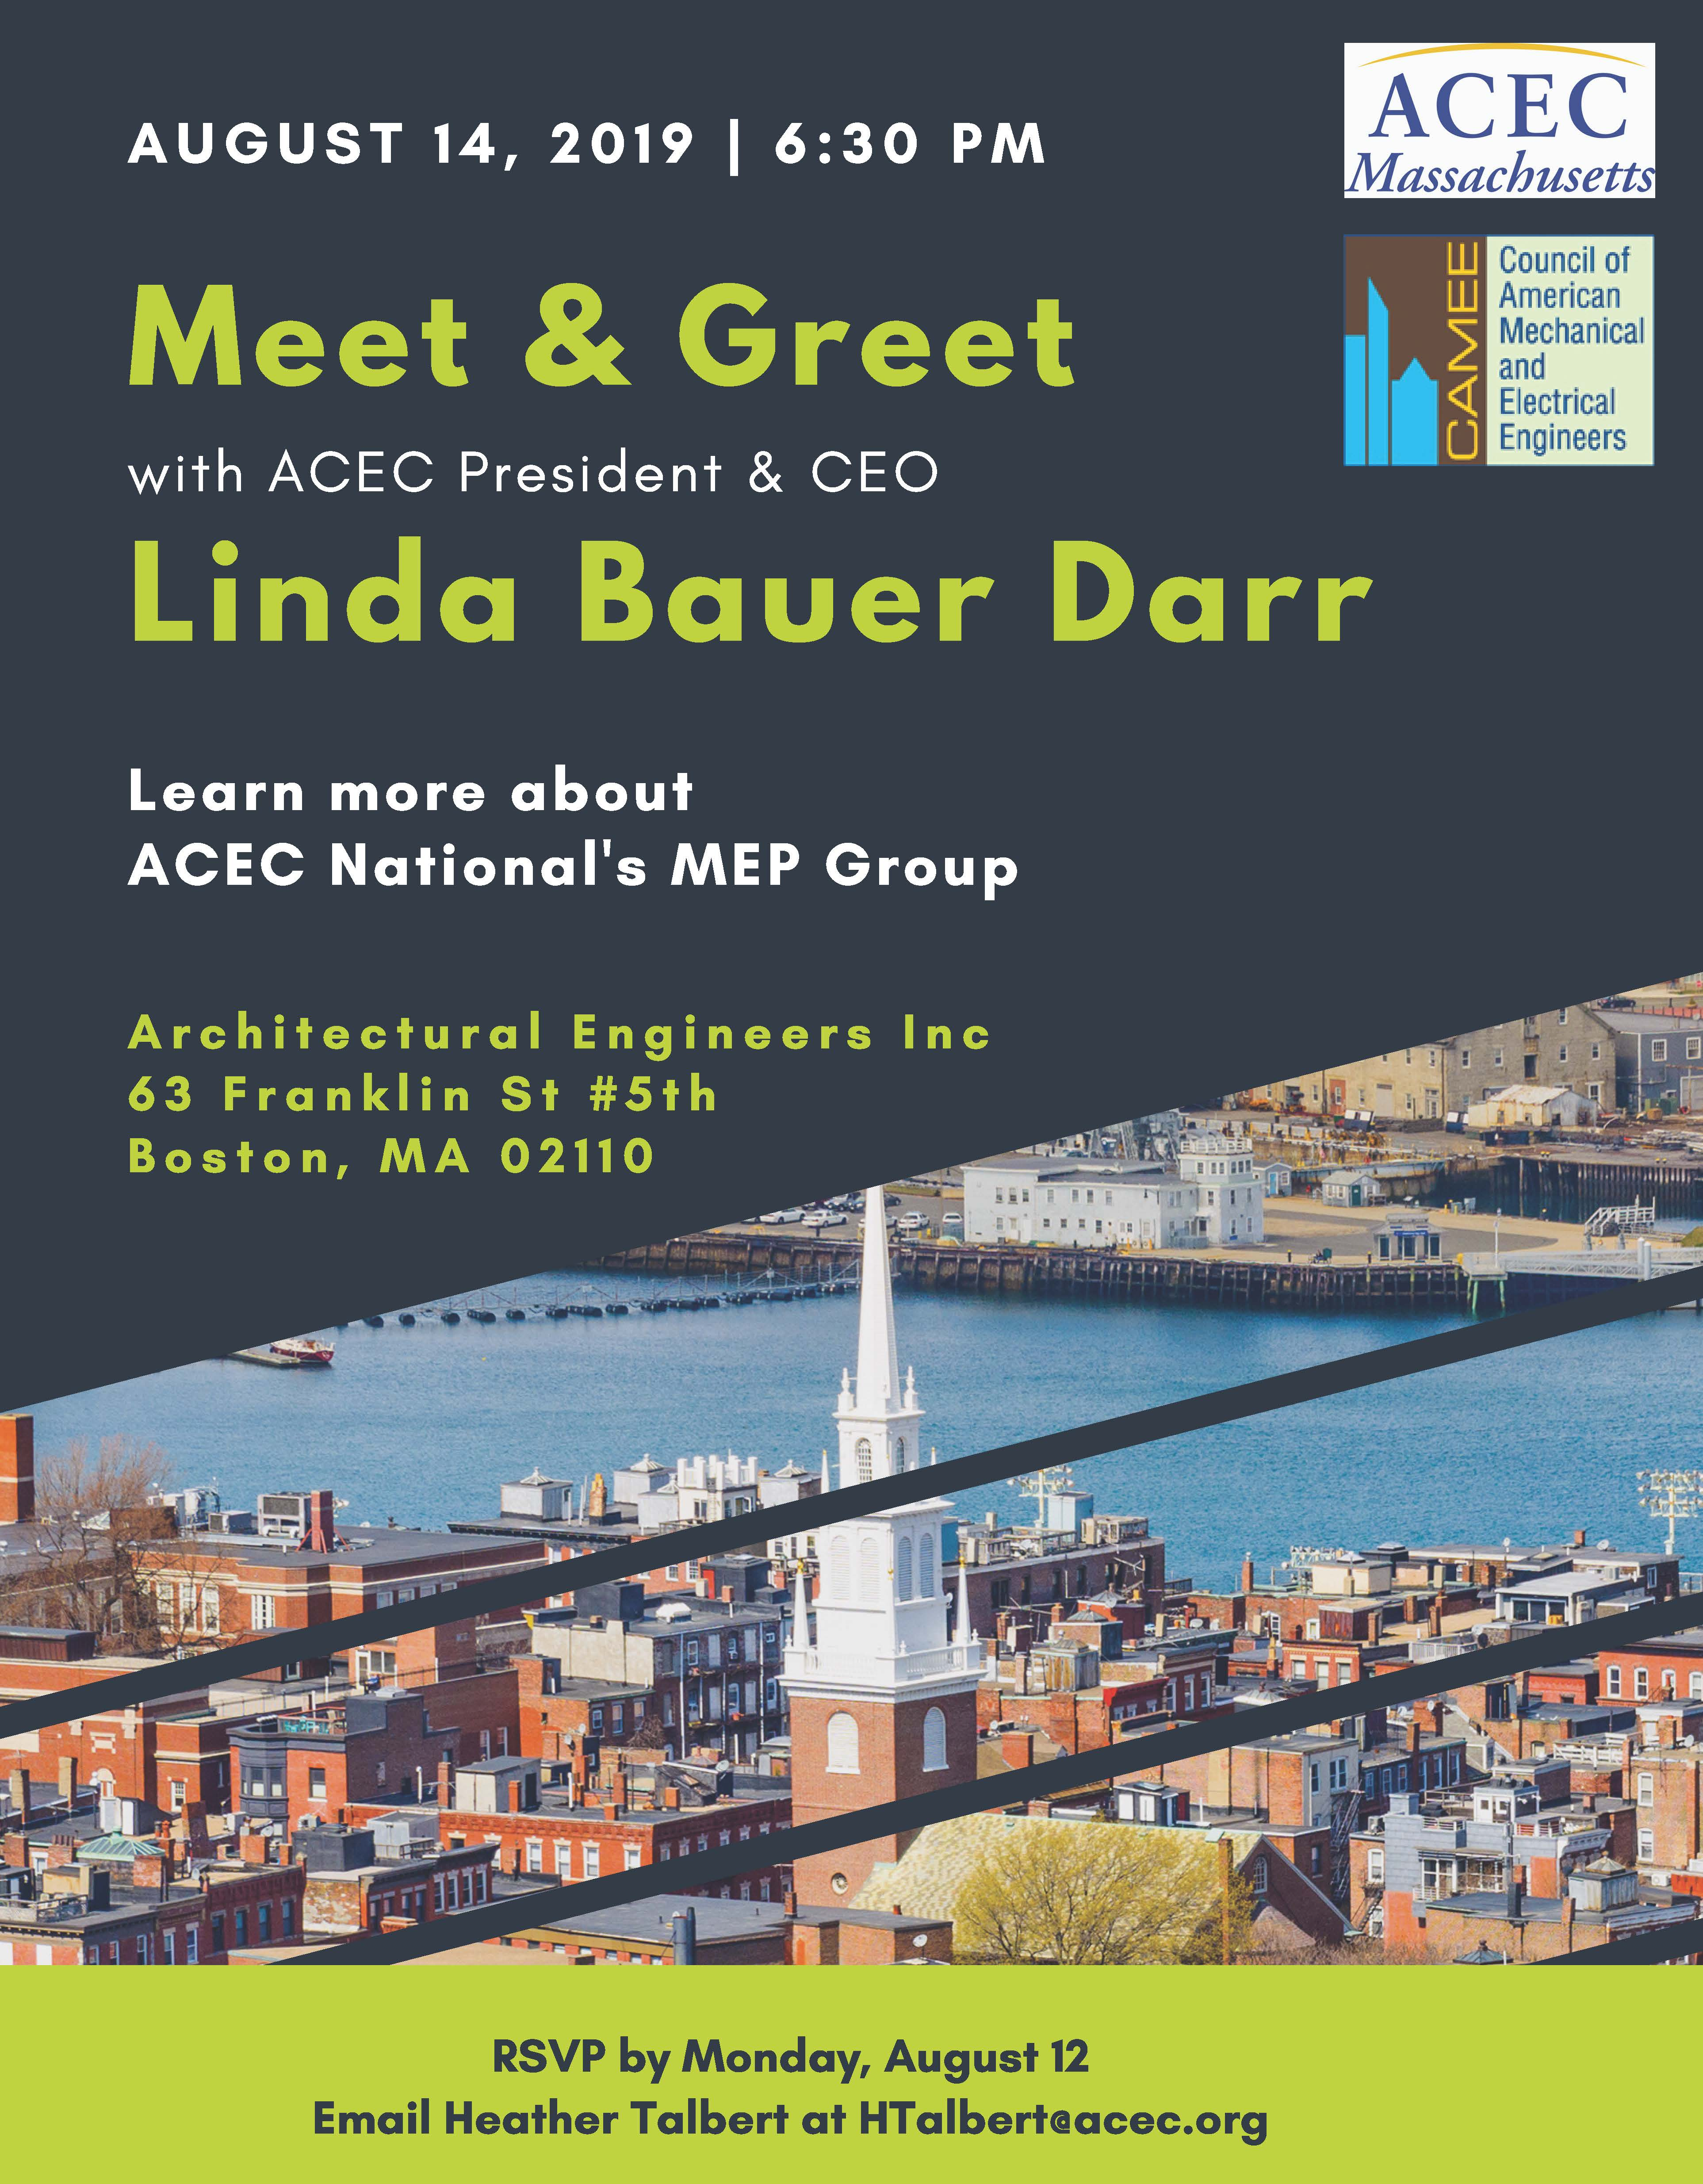 ACEC National Meet & Greet with Linda Bauer Darr - American Council